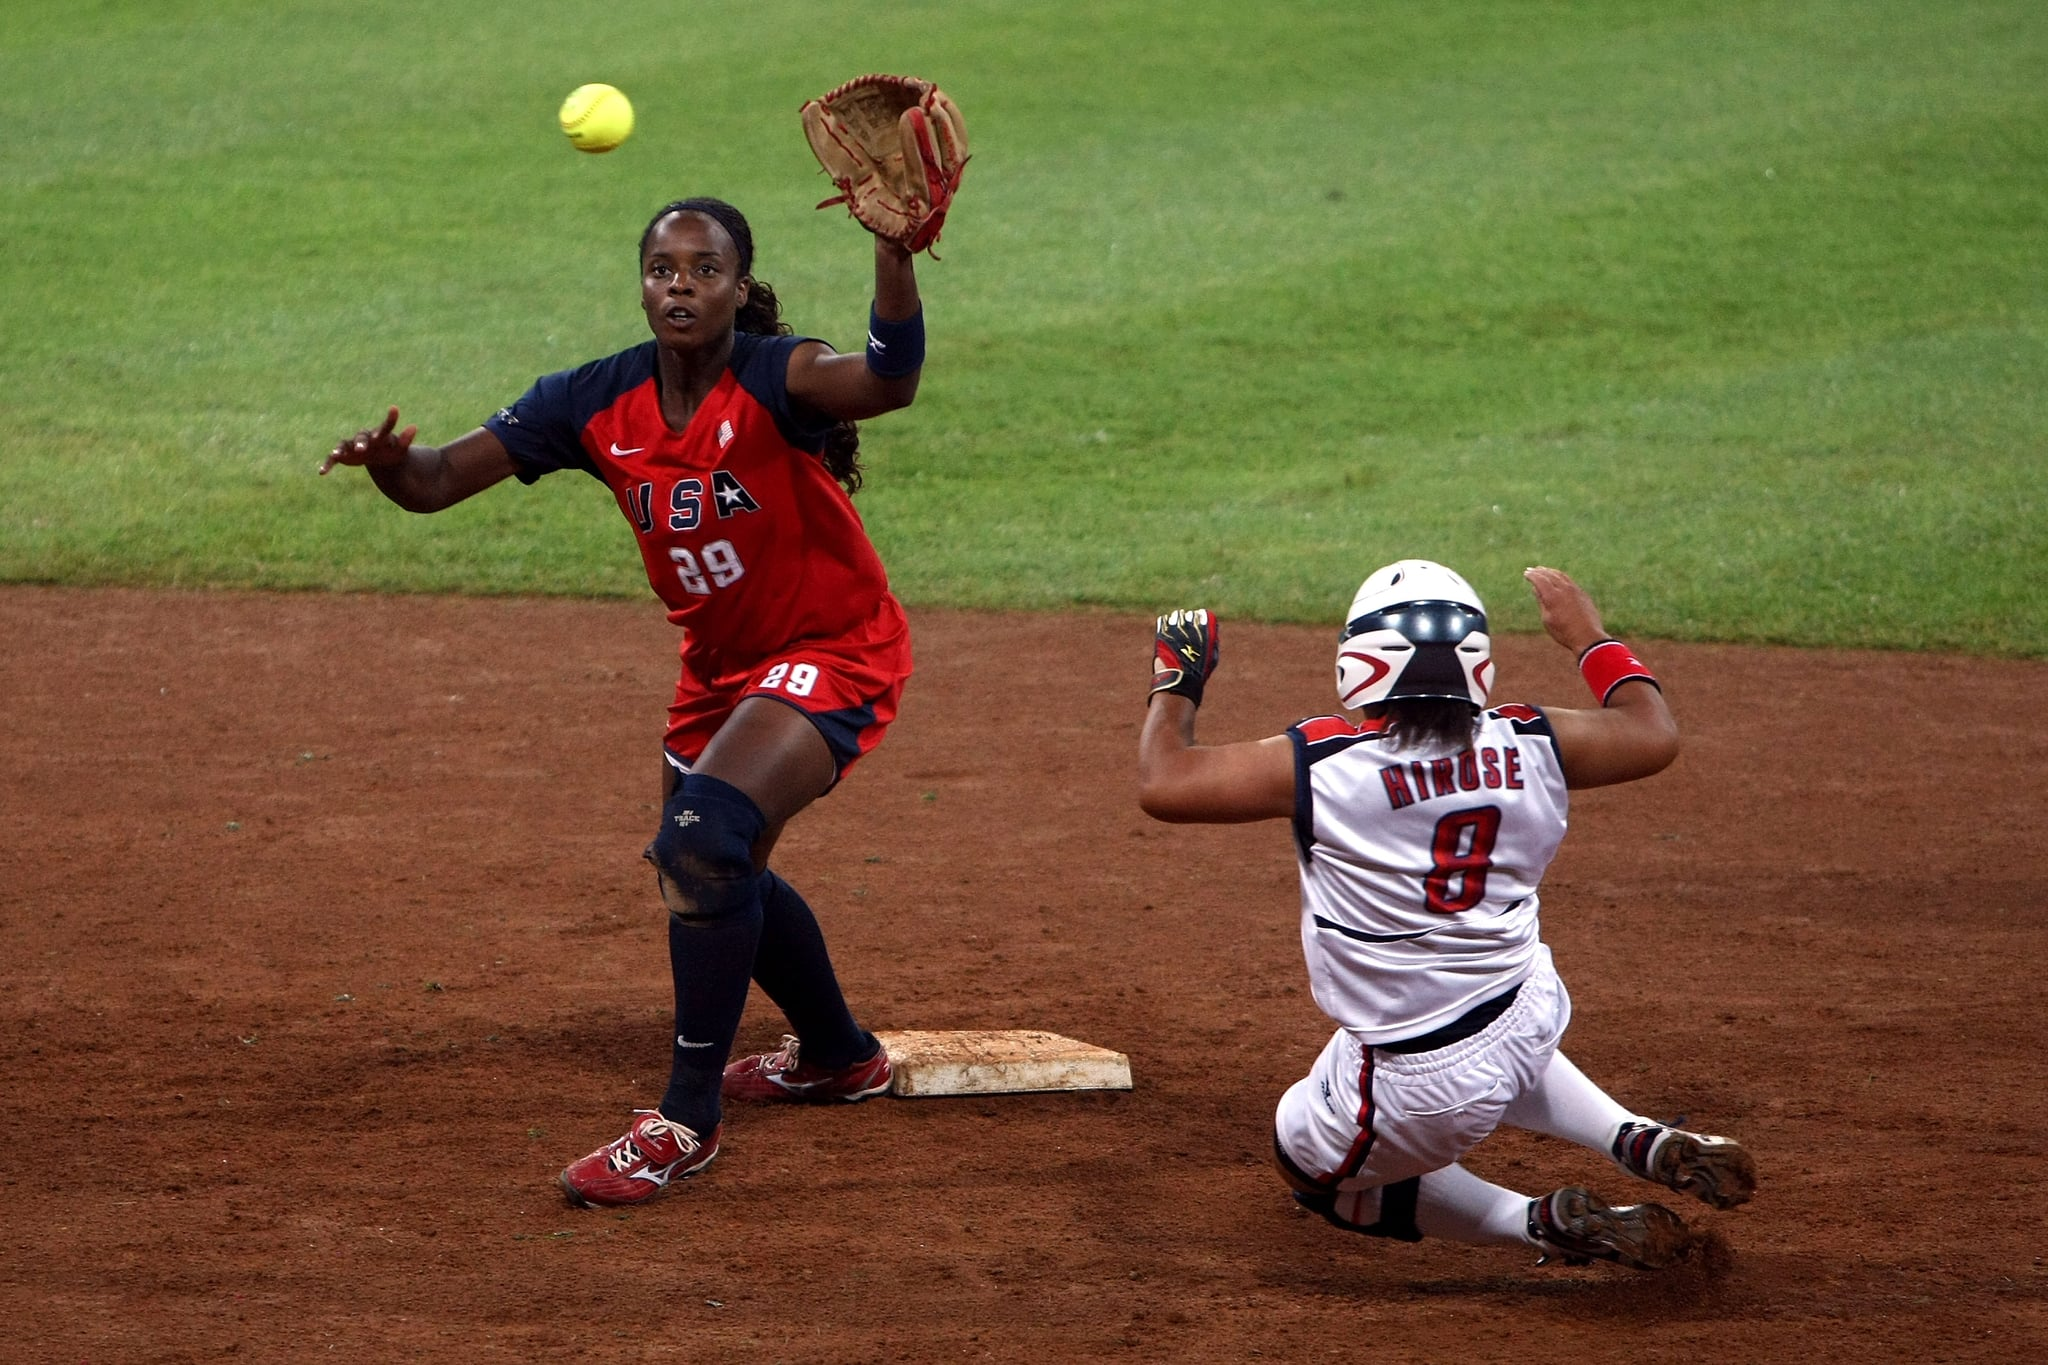 BEIJING - AUGUST 21:  Megu Hirose #8 of Japan slides into second base as shortstop Natasha Watley #28 of the United States waits for the ball during the women's grand final gold medal softball game at the Fengtai Softball Field during Day 13 of the Beijing 2008 Olympic Games on August 21, 2008 in Beijing, China.  (Photo by Jonathan Ferrey/Getty Images)